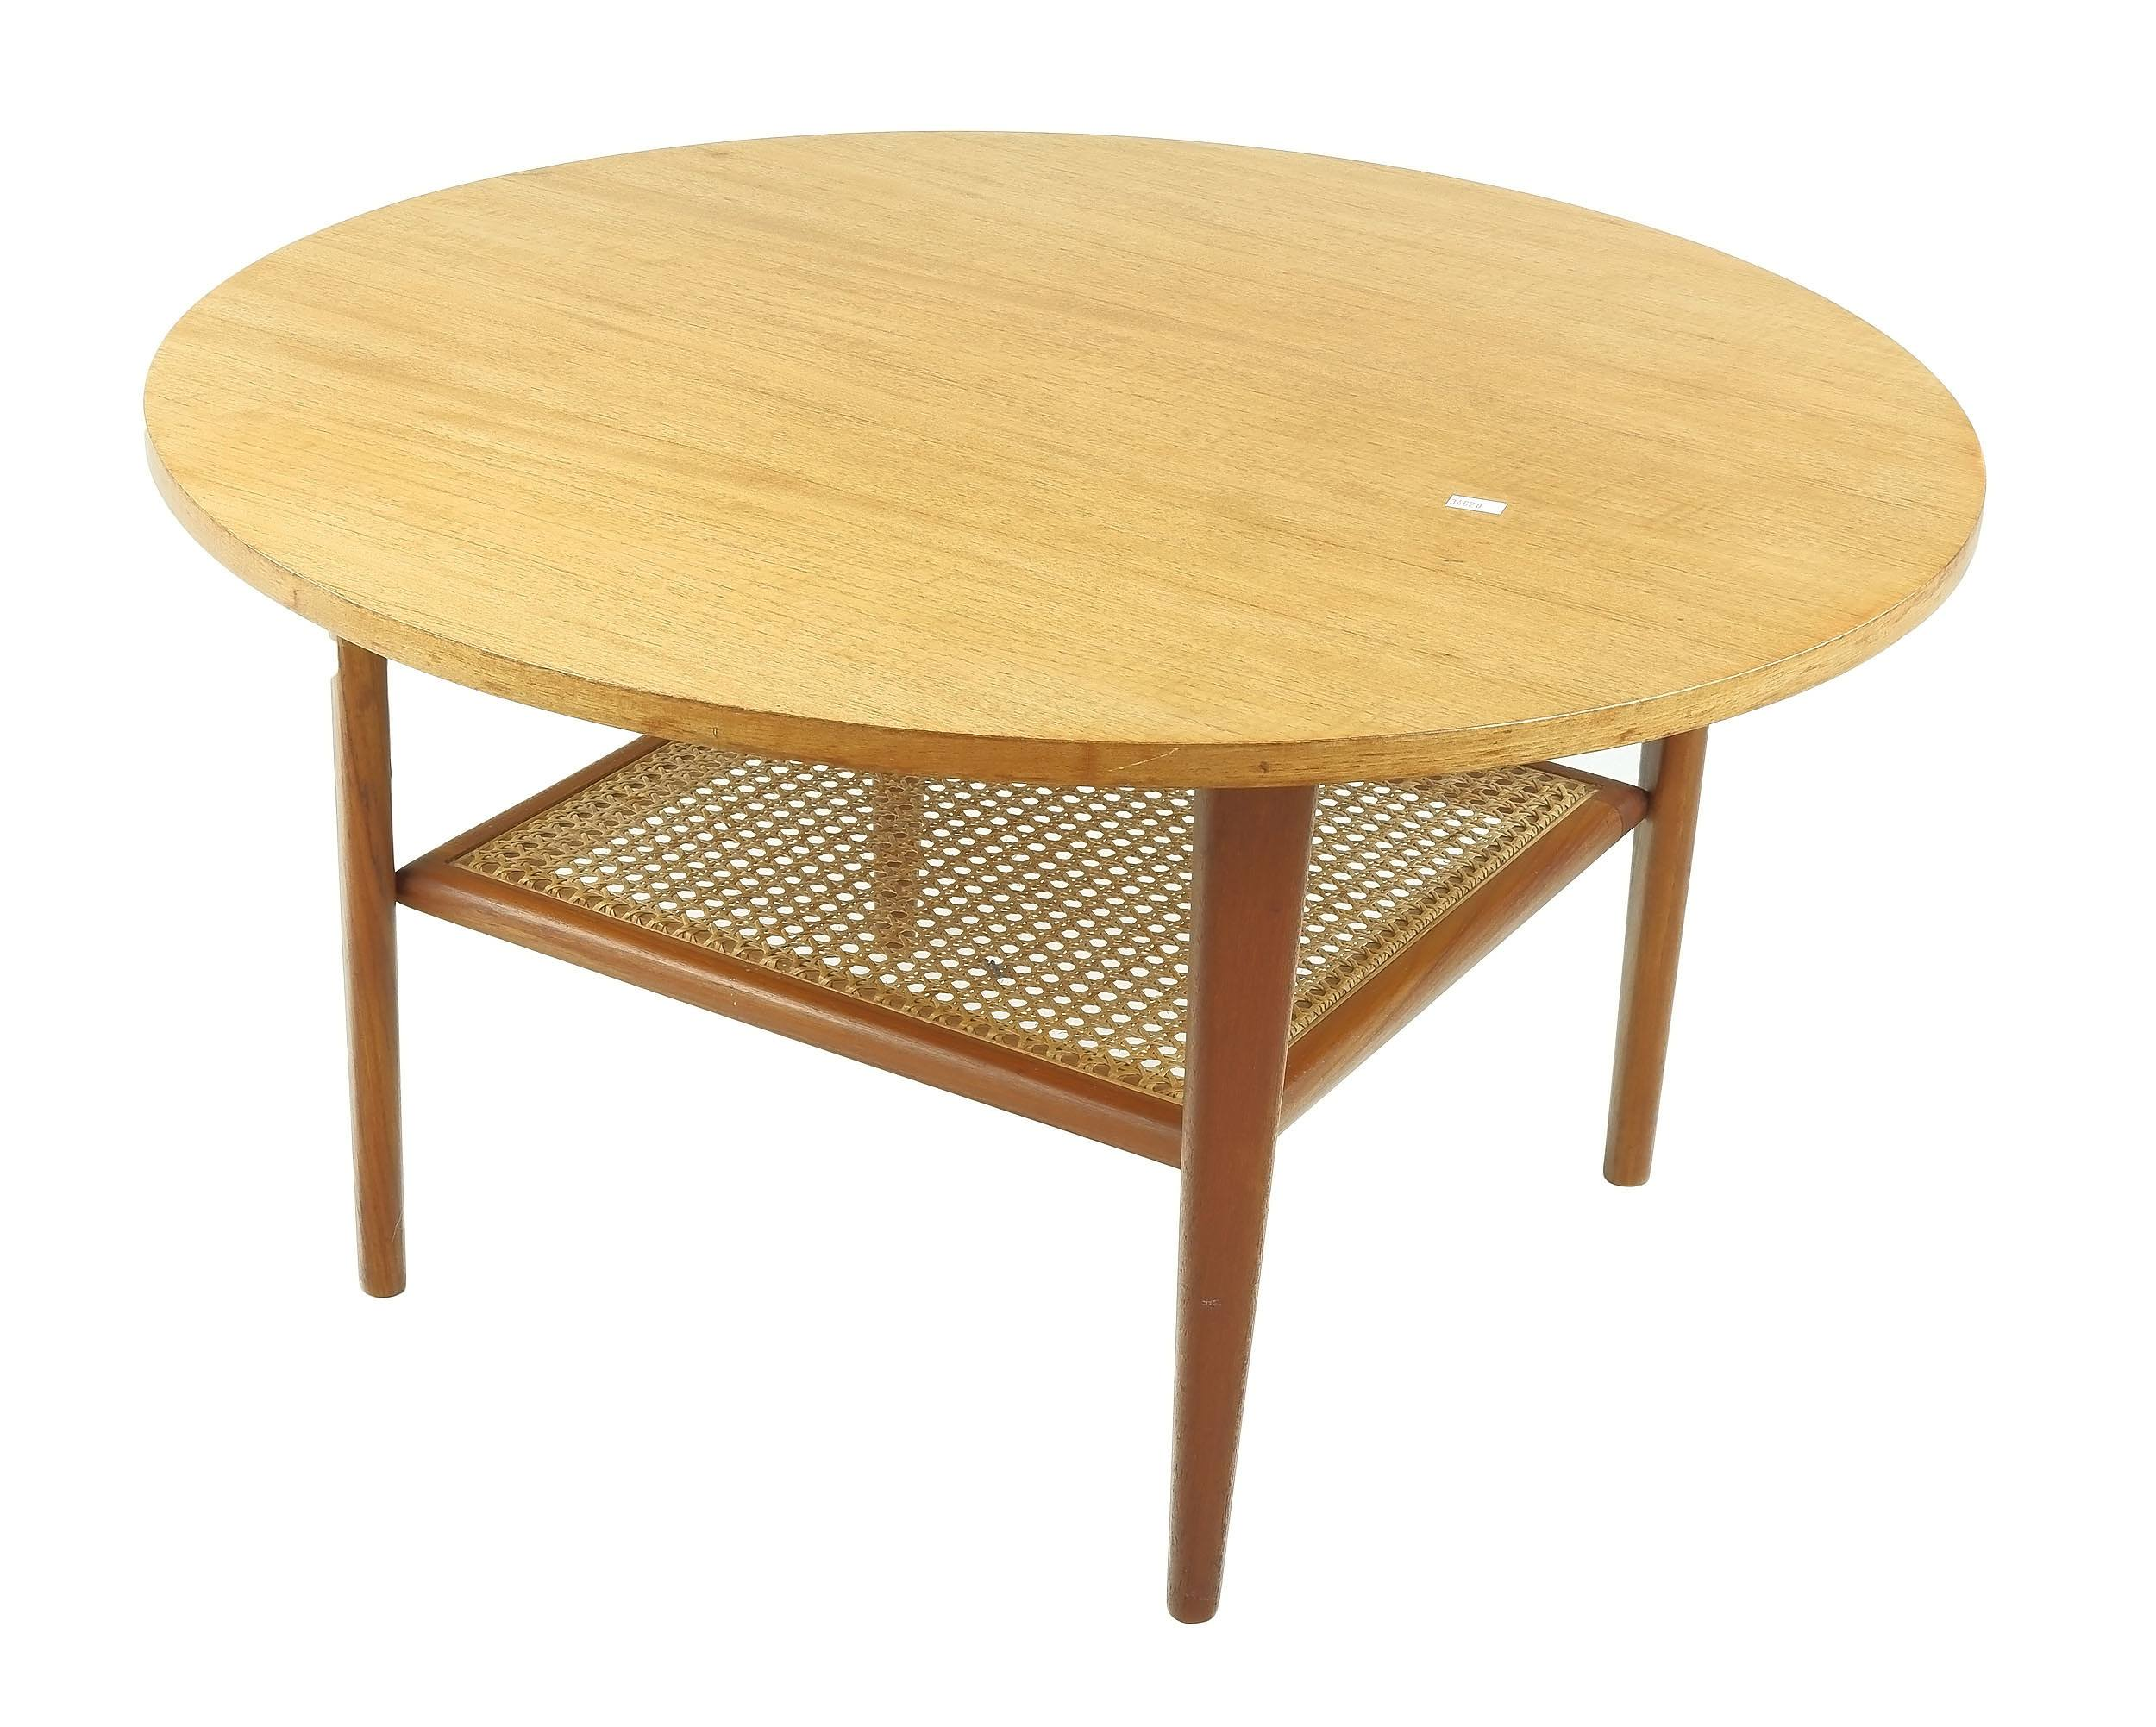 'Circular Teak Coffee Table with Rattan Magazine Shelf and Cigar Legs'